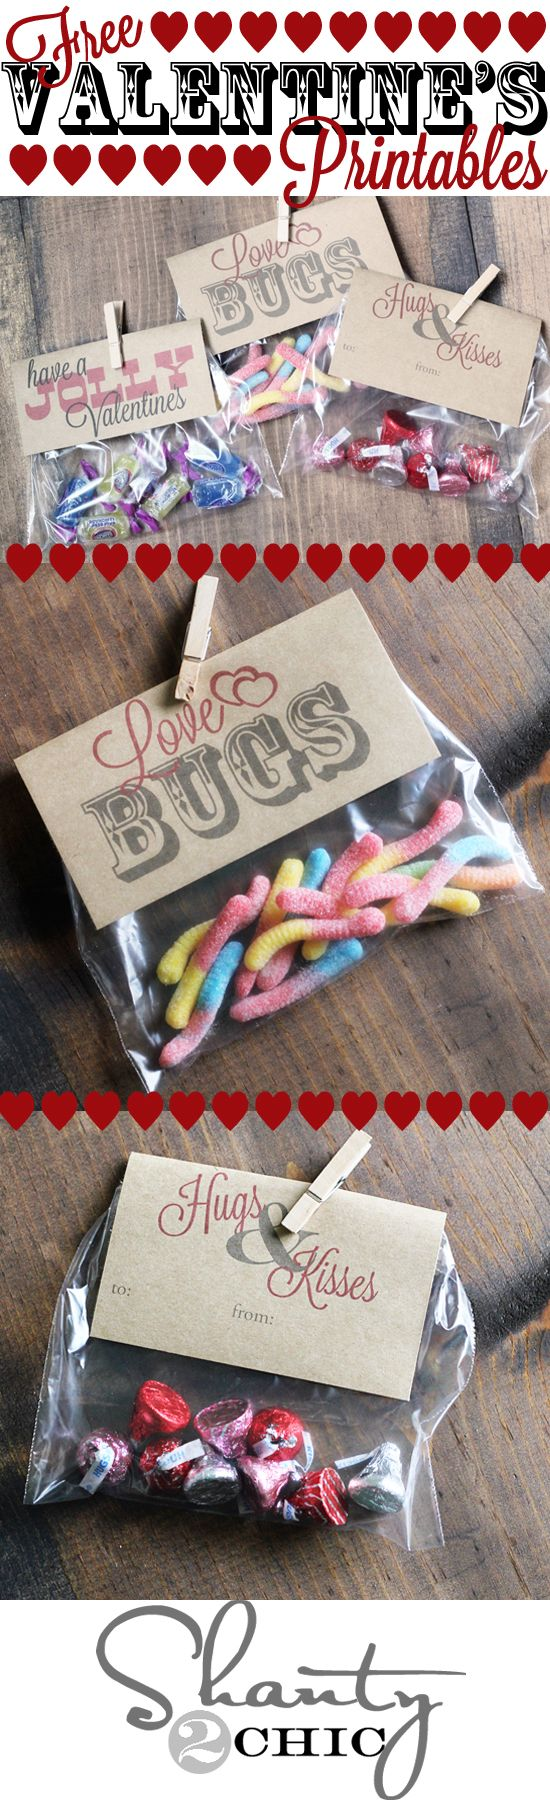 Valentines day ove bug free printables Sea Salt Web